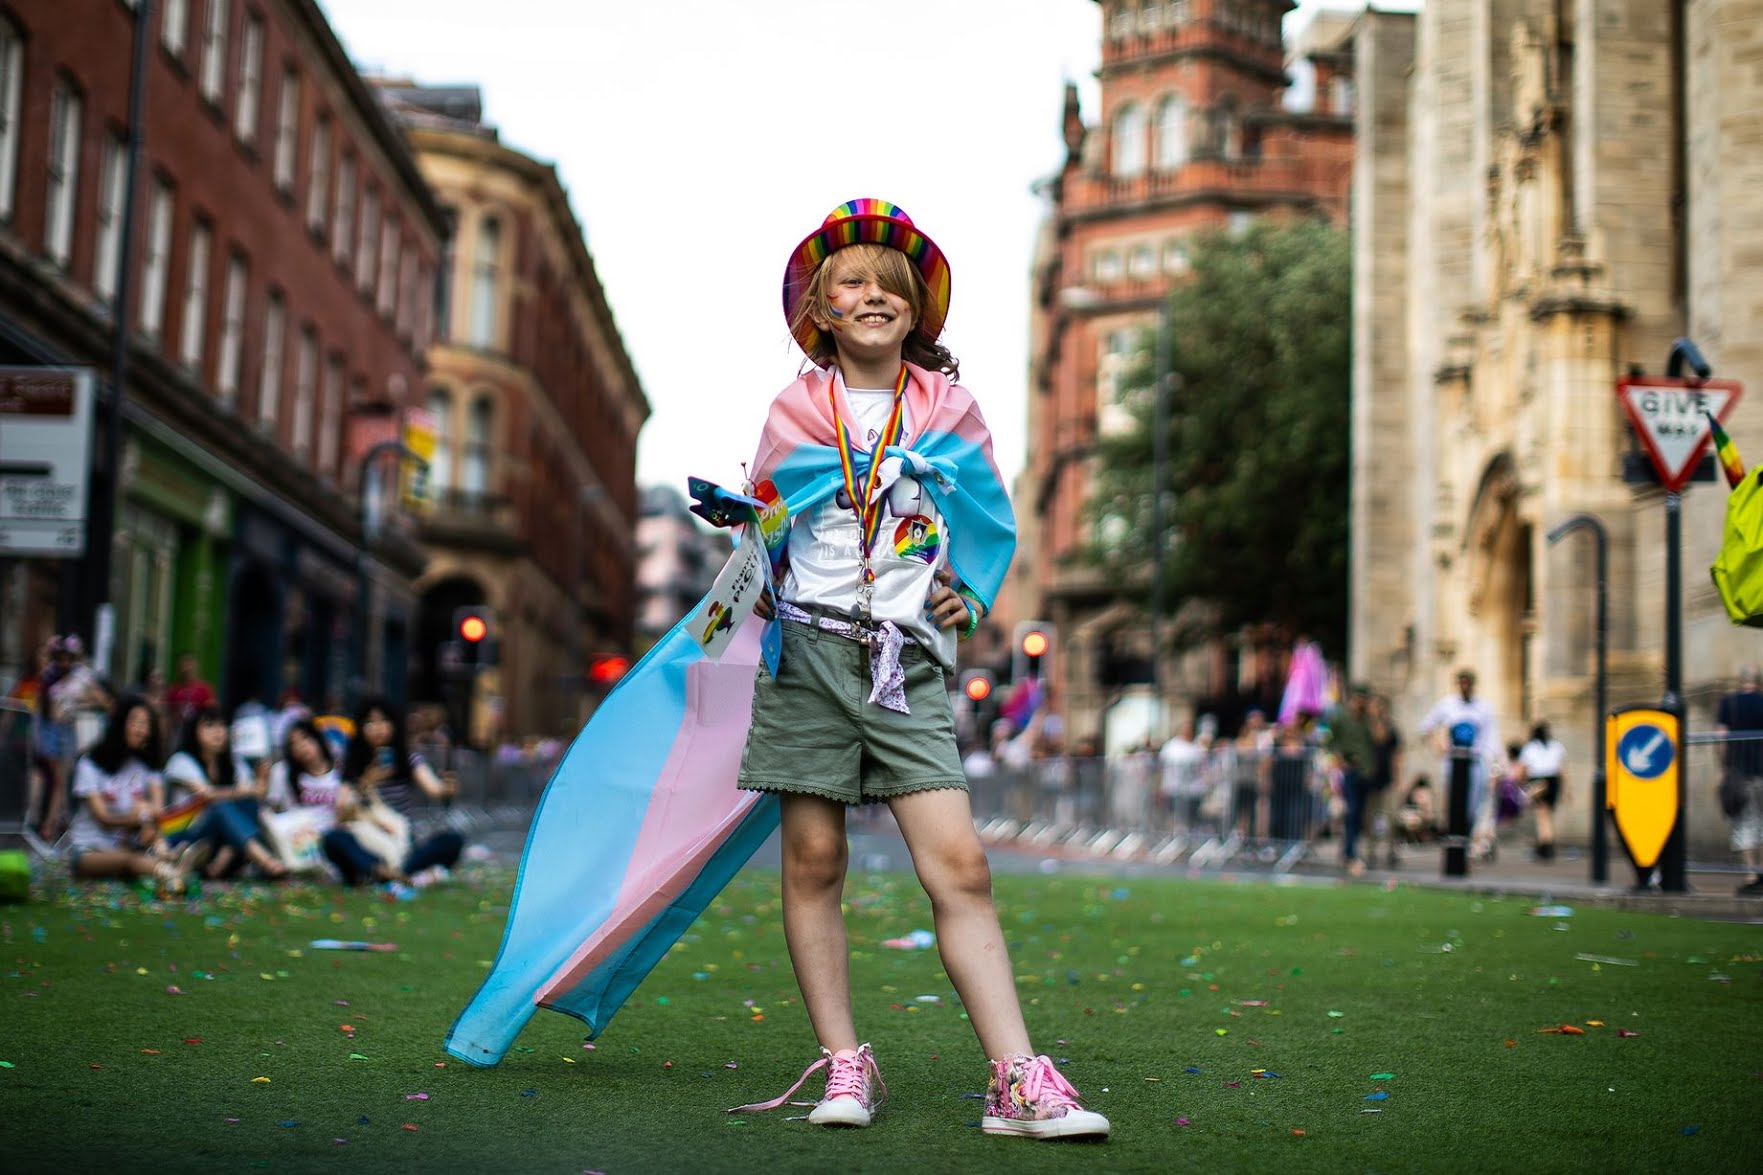 Young person wearing pride flag and hat